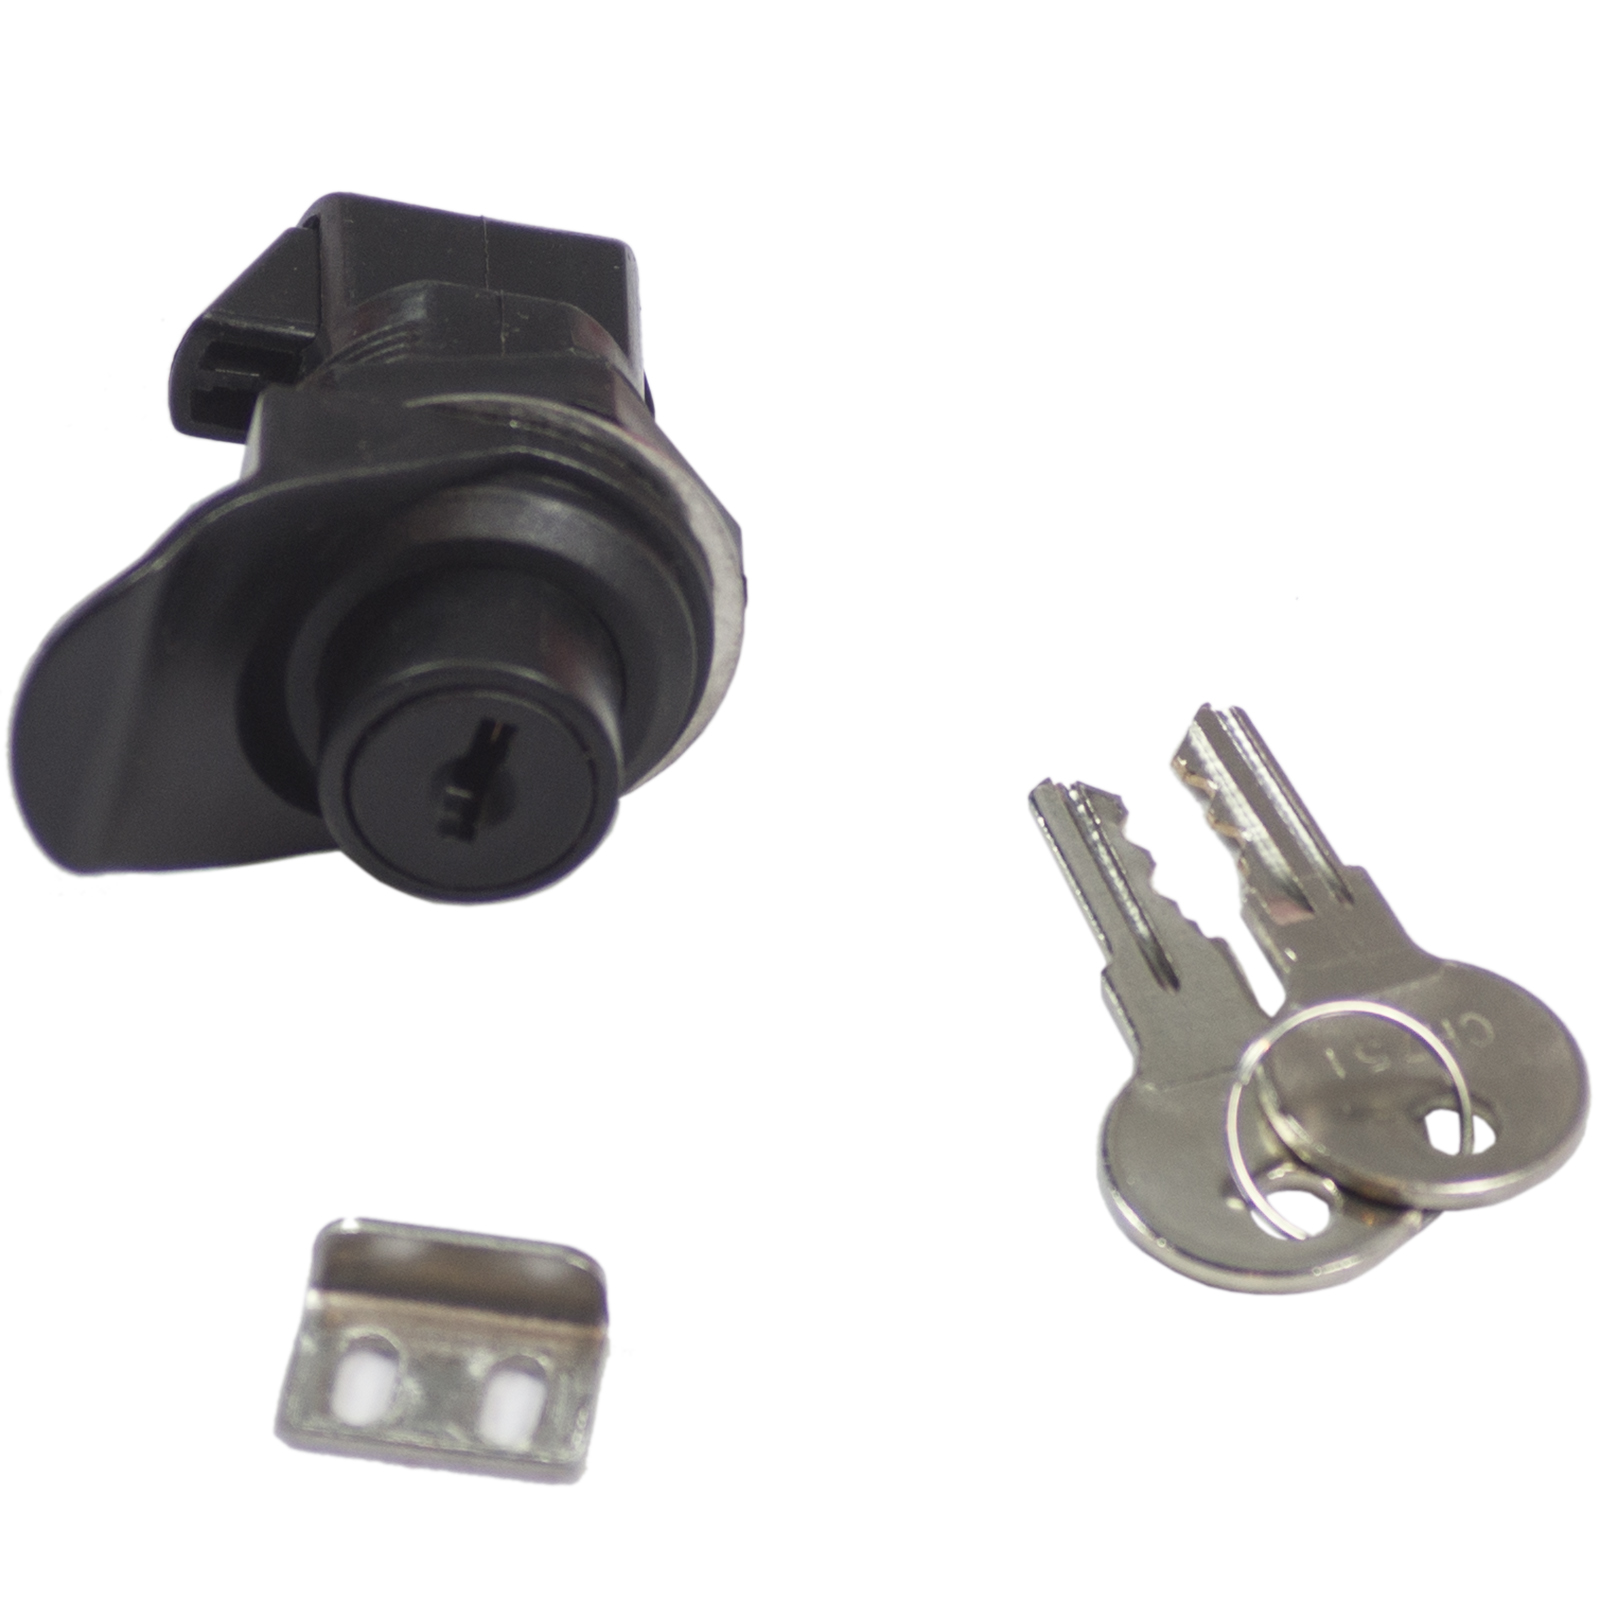 Black ABS Plastic Push Button Locking Latch